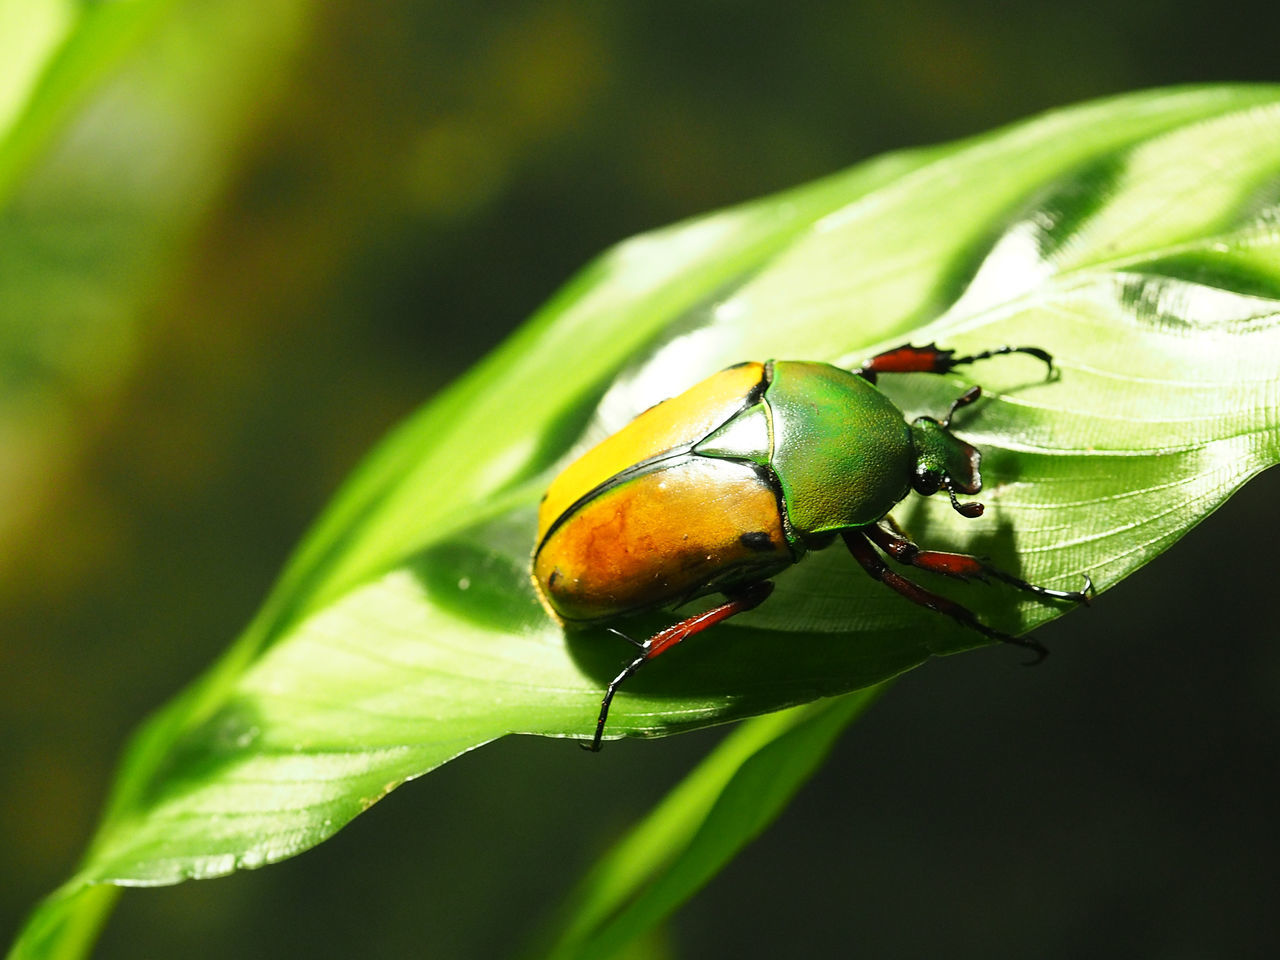 animal wildlife, animal themes, invertebrate, animals in the wild, insect, animal, plant part, green color, one animal, leaf, close-up, plant, focus on foreground, no people, nature, day, growth, beauty in nature, beetle, outdoors